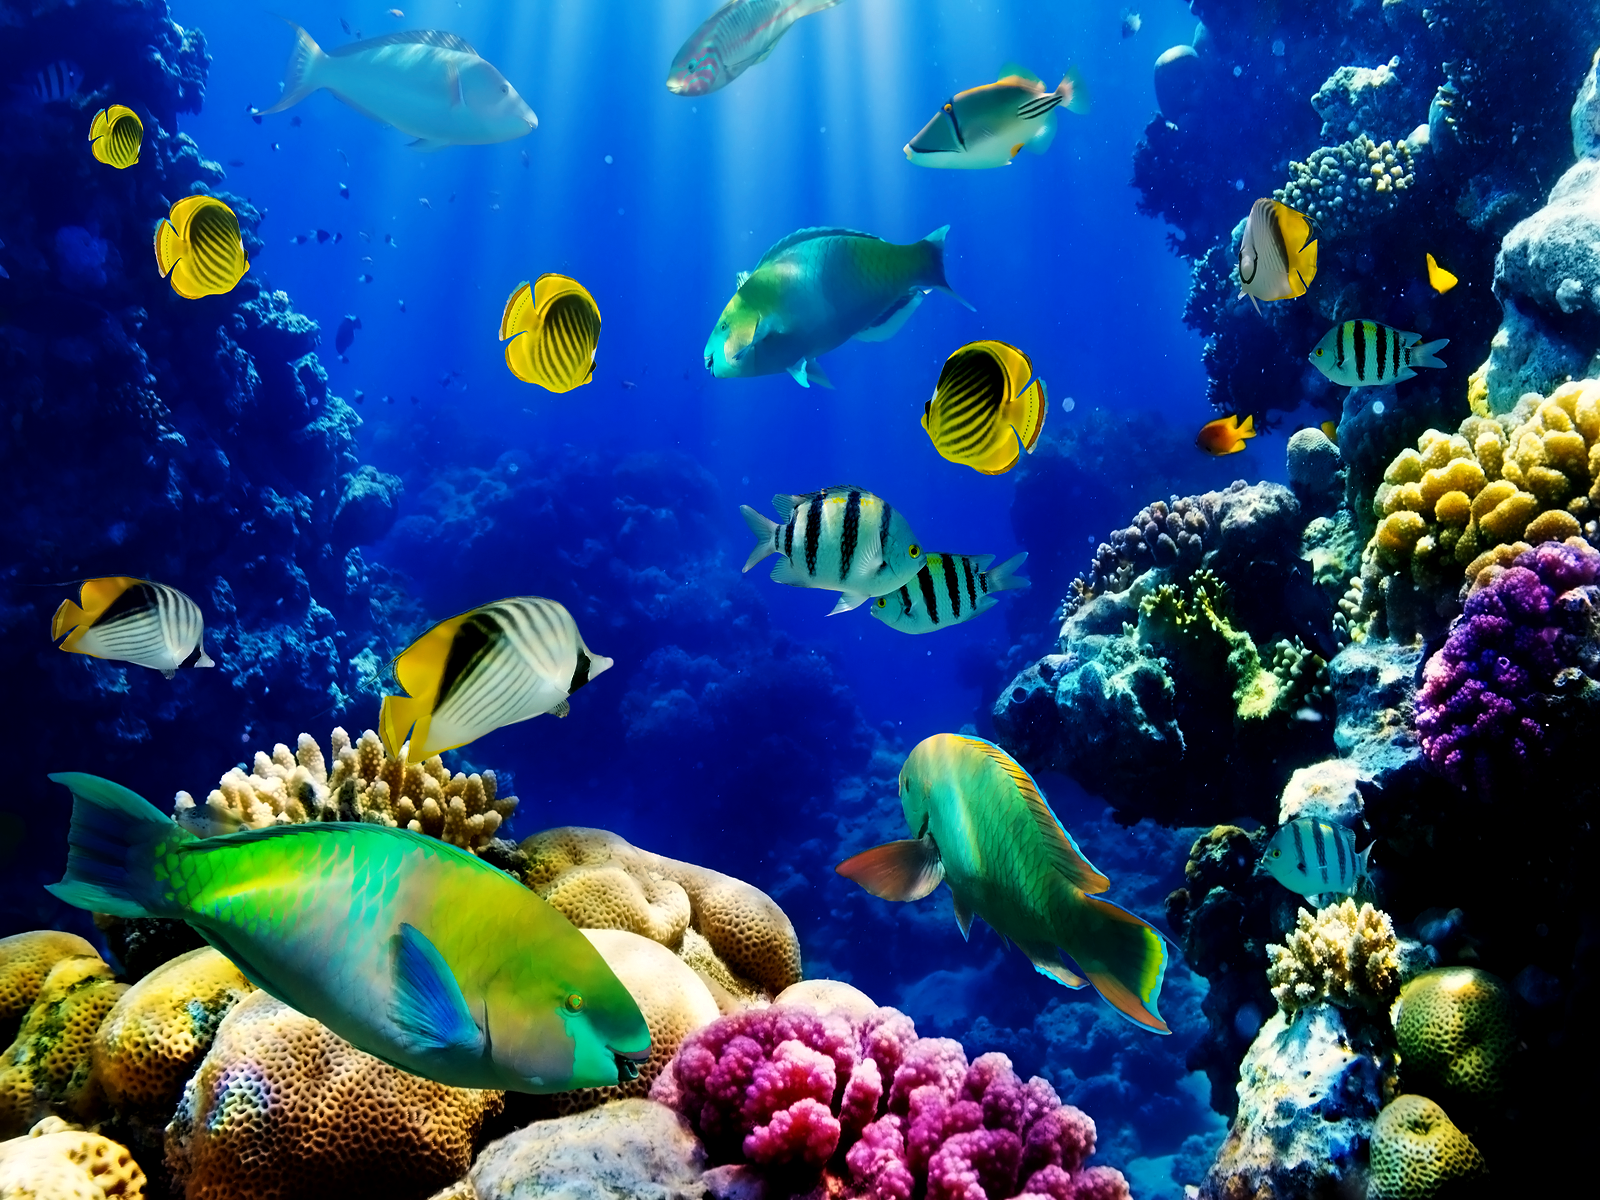 Live fish aquarium wallpaper wallpapersafari for Aquarium fish online